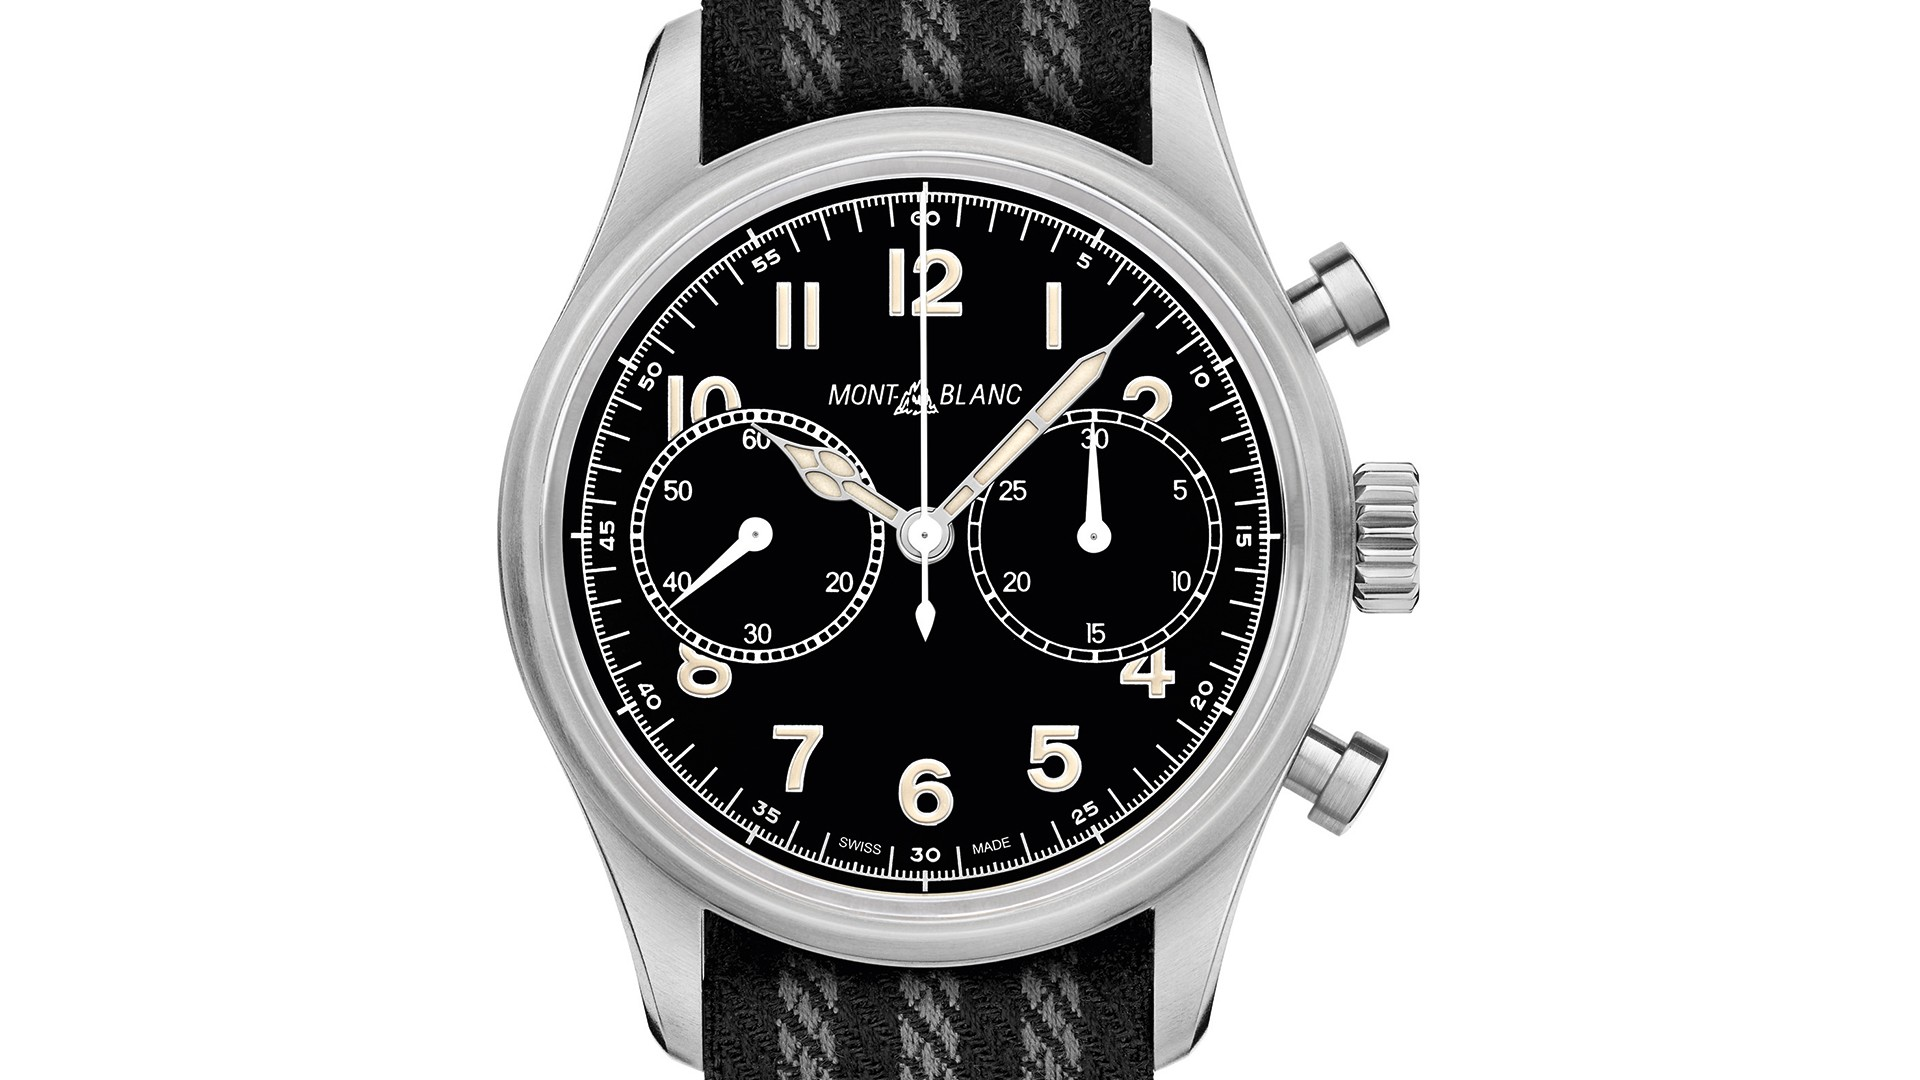 Montblanc 1858 Automatic Chronograph watch